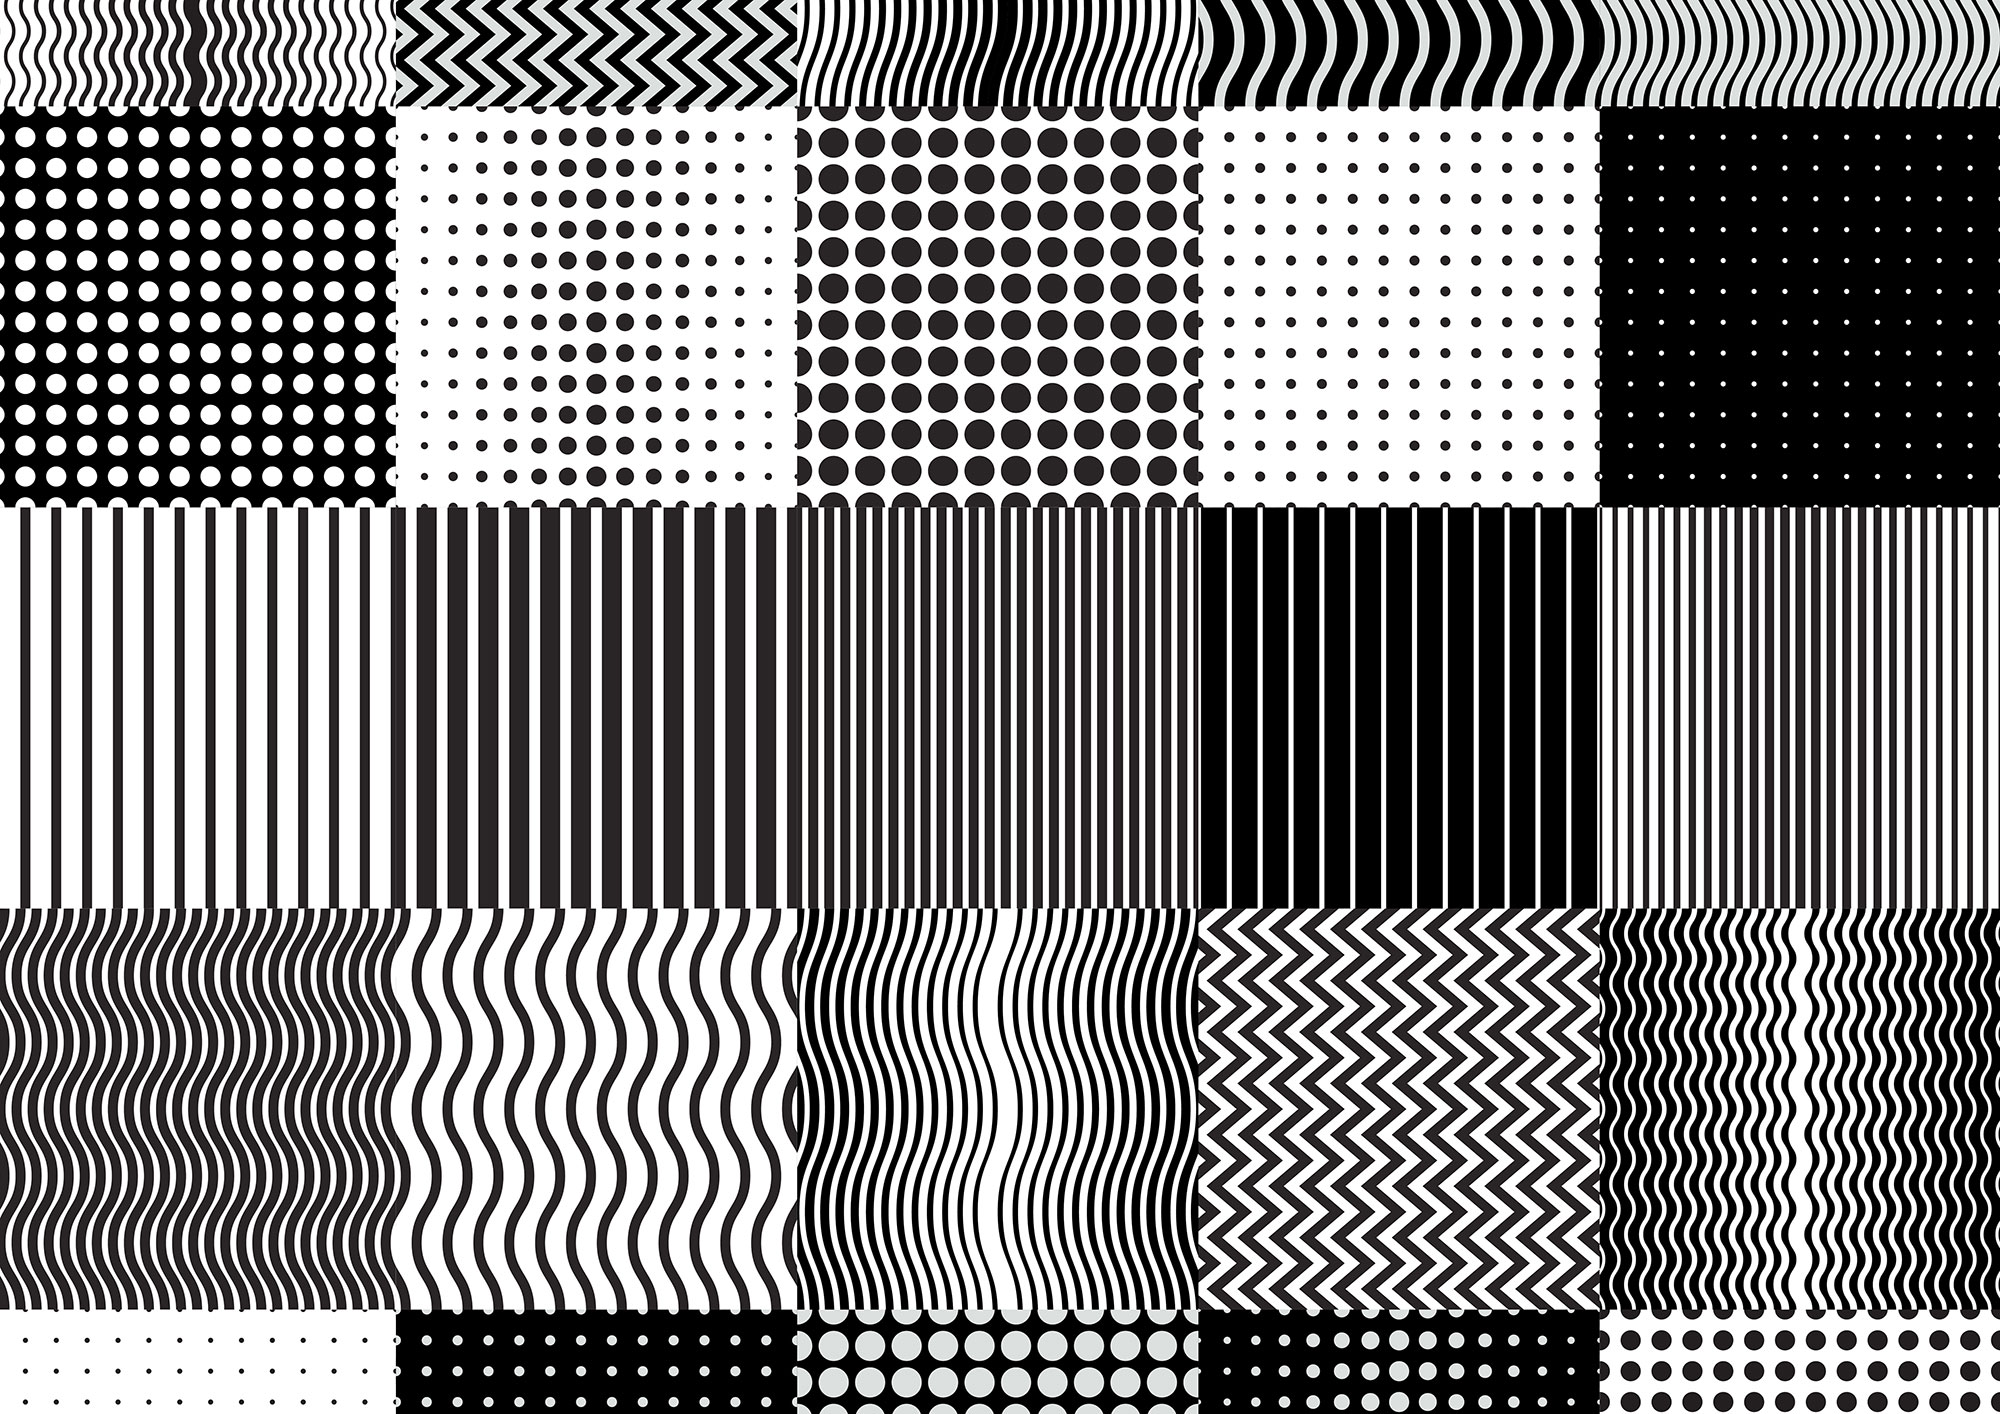 GIF Fest SG festival branding identity - Repeated pattern tiles for 3D key visual animation.